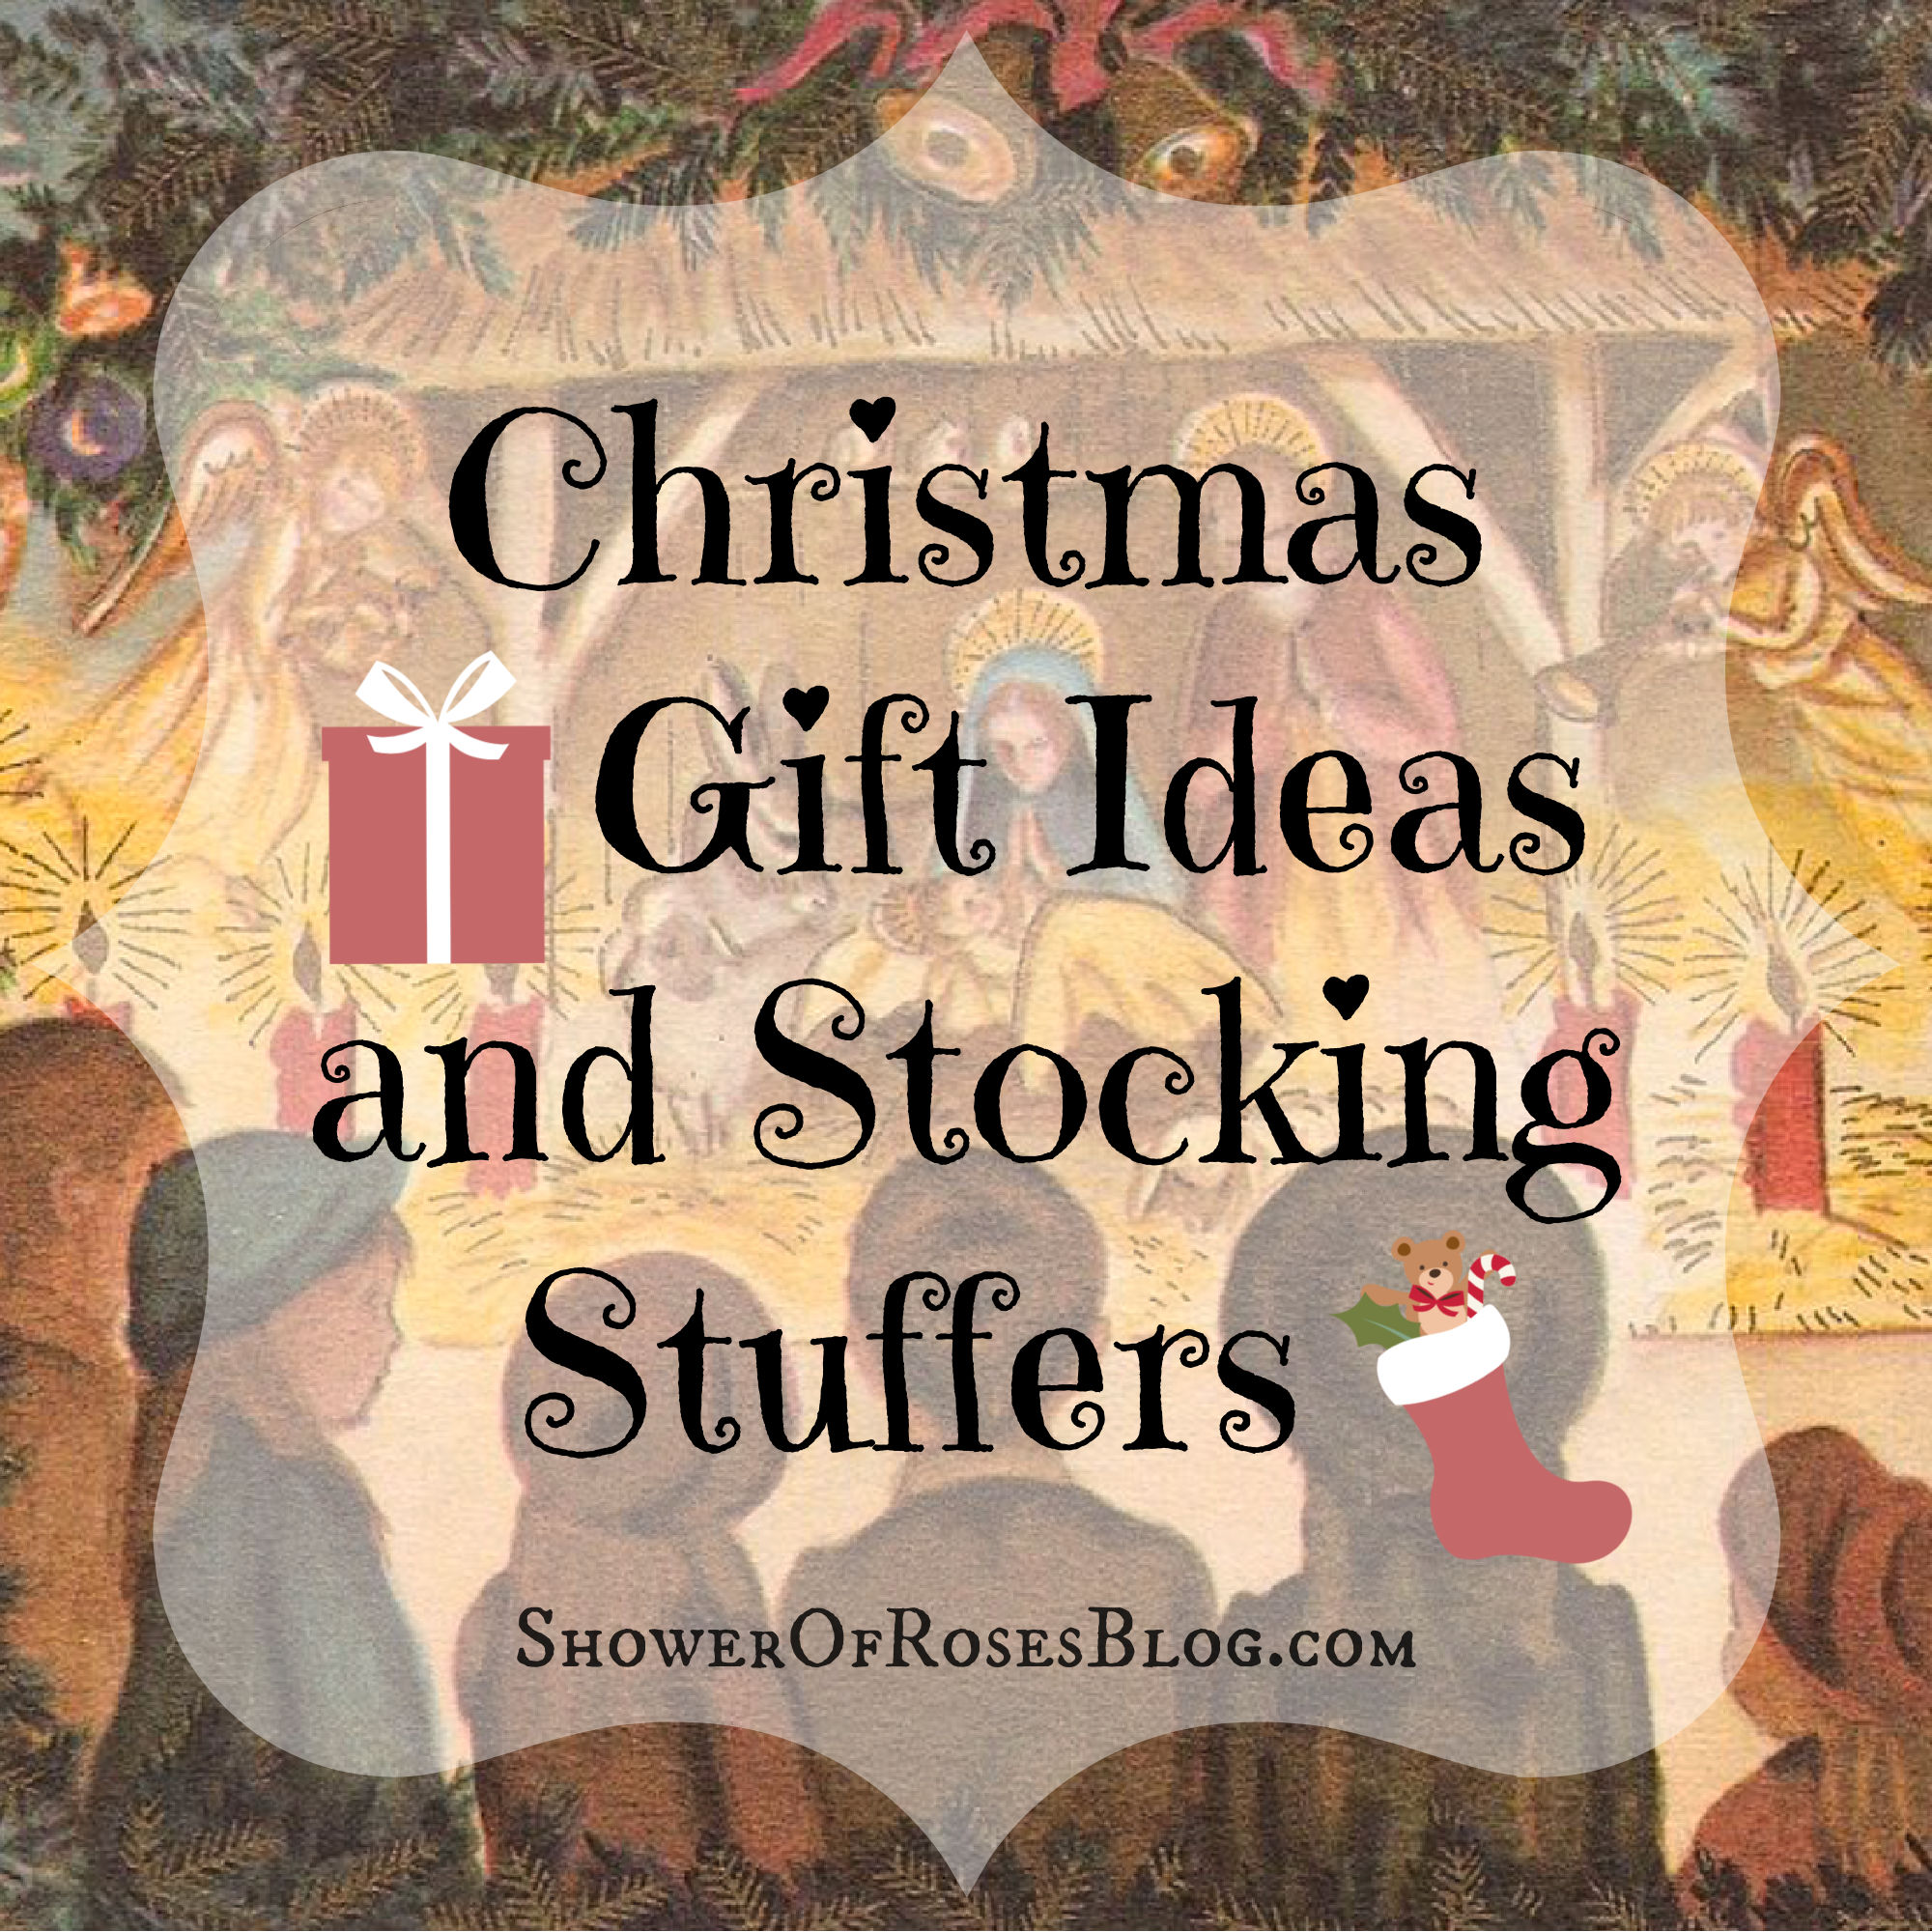 2020 Christmas Gift Ideas Stocking Stuffers Plus Another Sleighful Of Giveaways Shower Of Roses